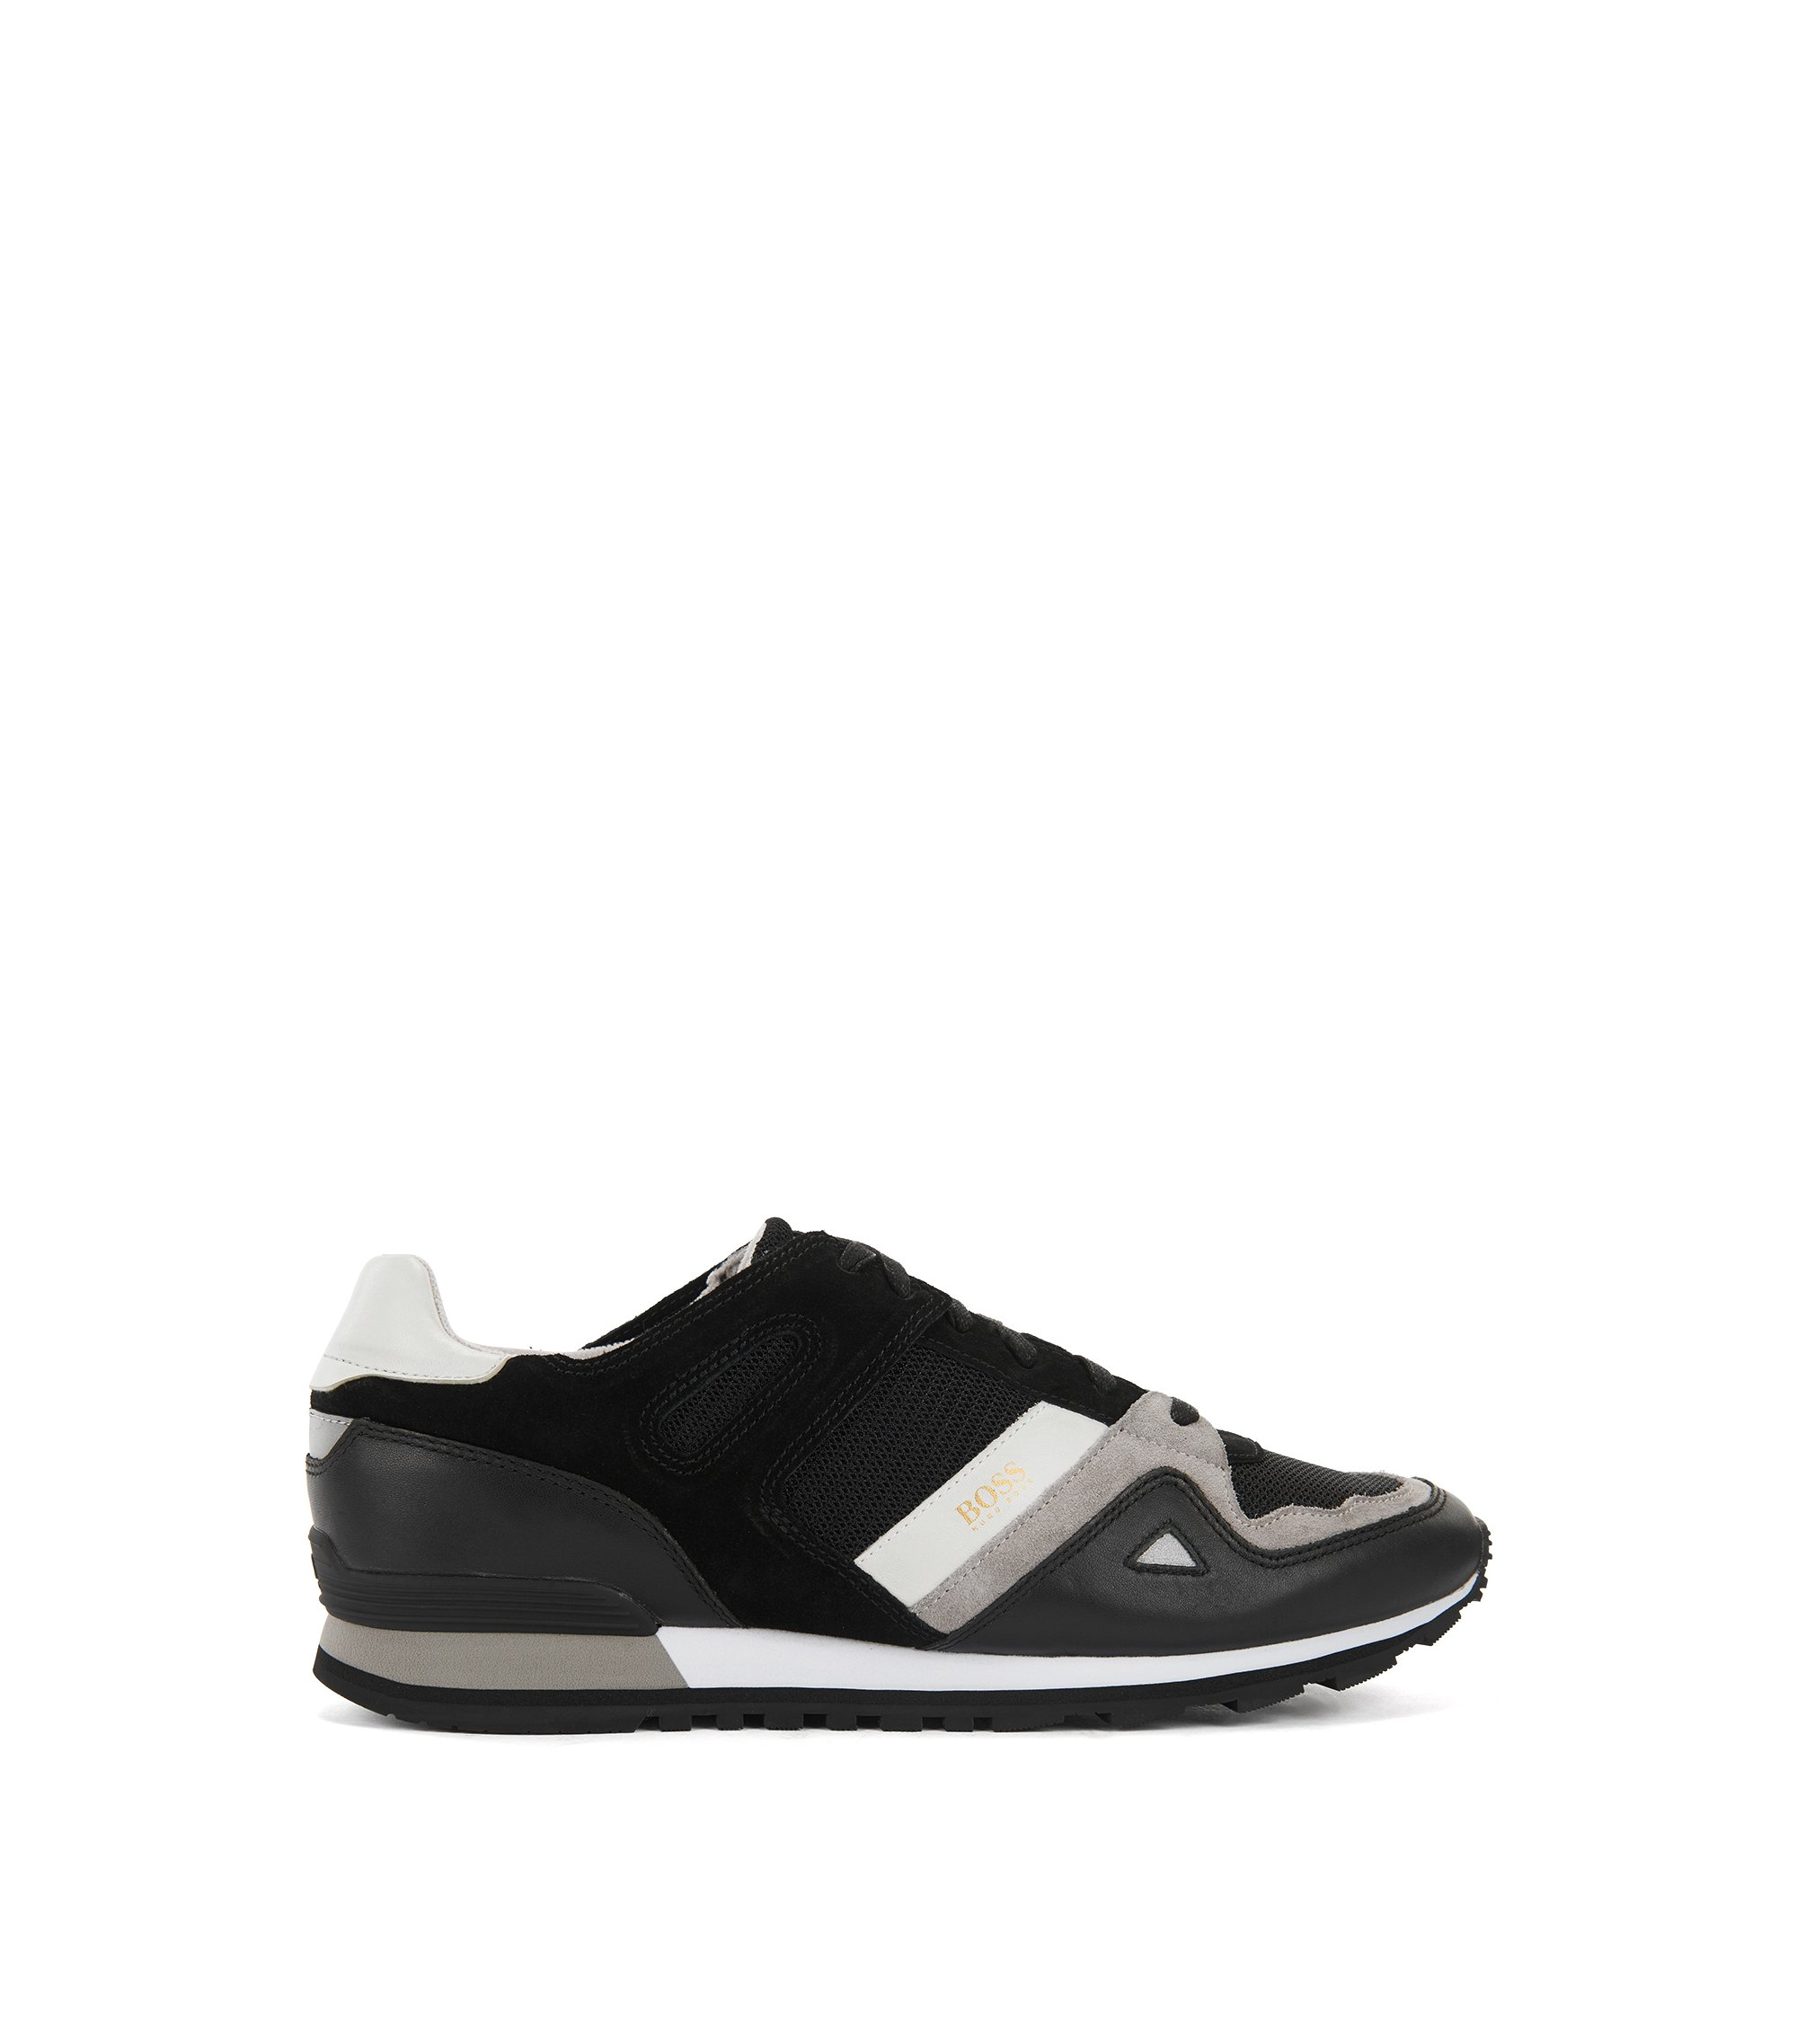 Sneakers stringate con rivestimenti in pelle, Nero